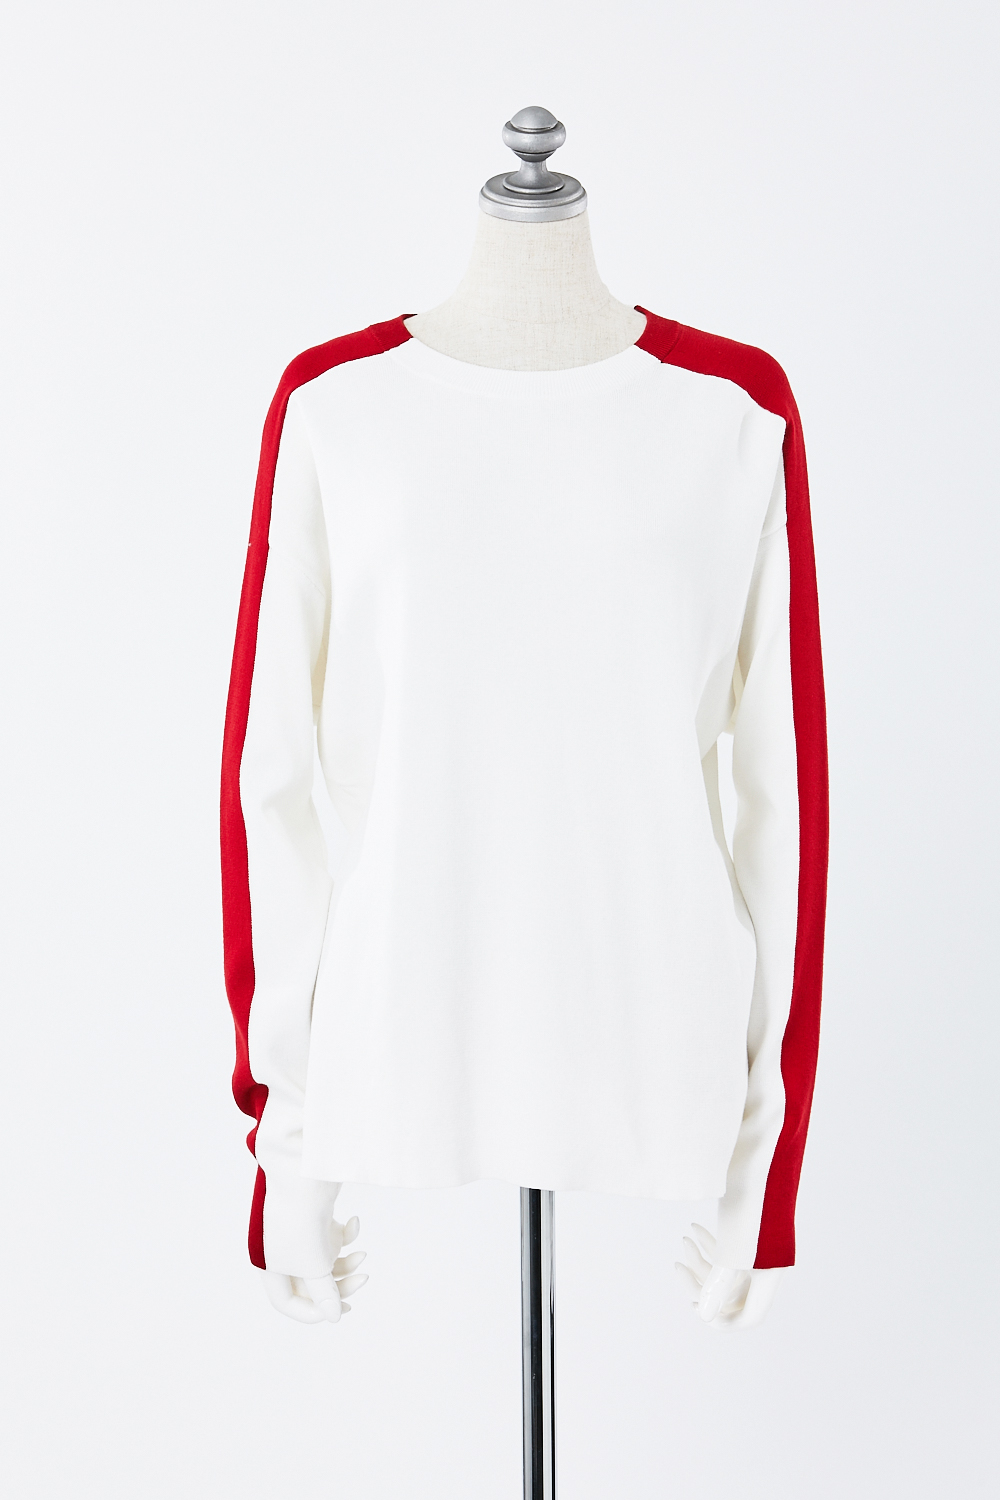 TO505118 LACOSTE